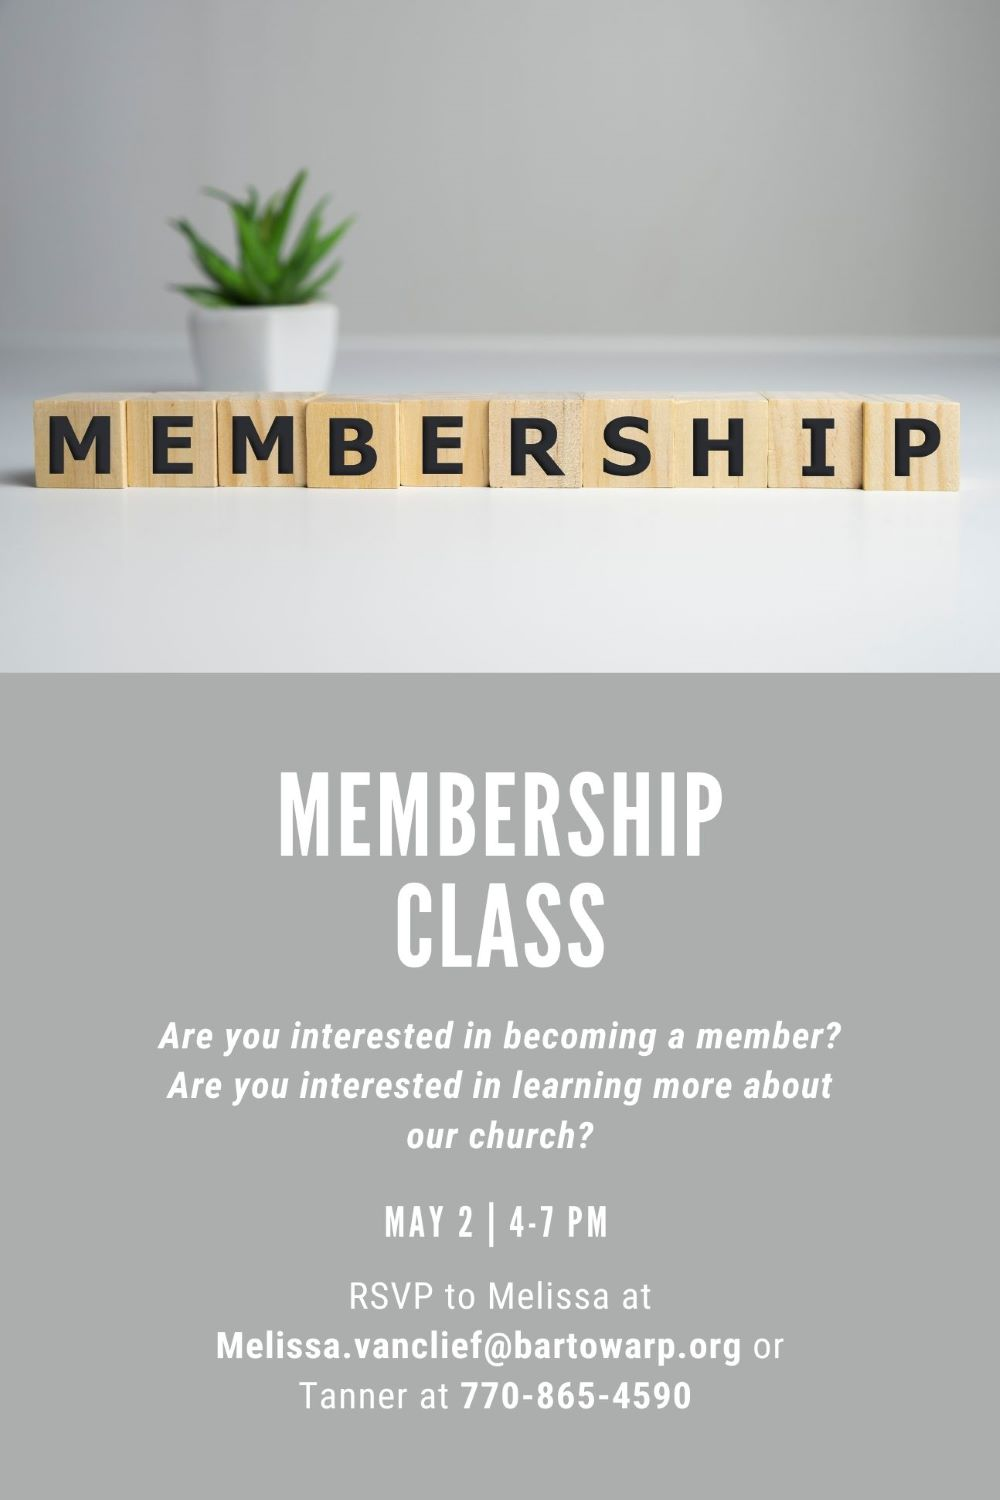 MemberShip Class Flyer cropped 2